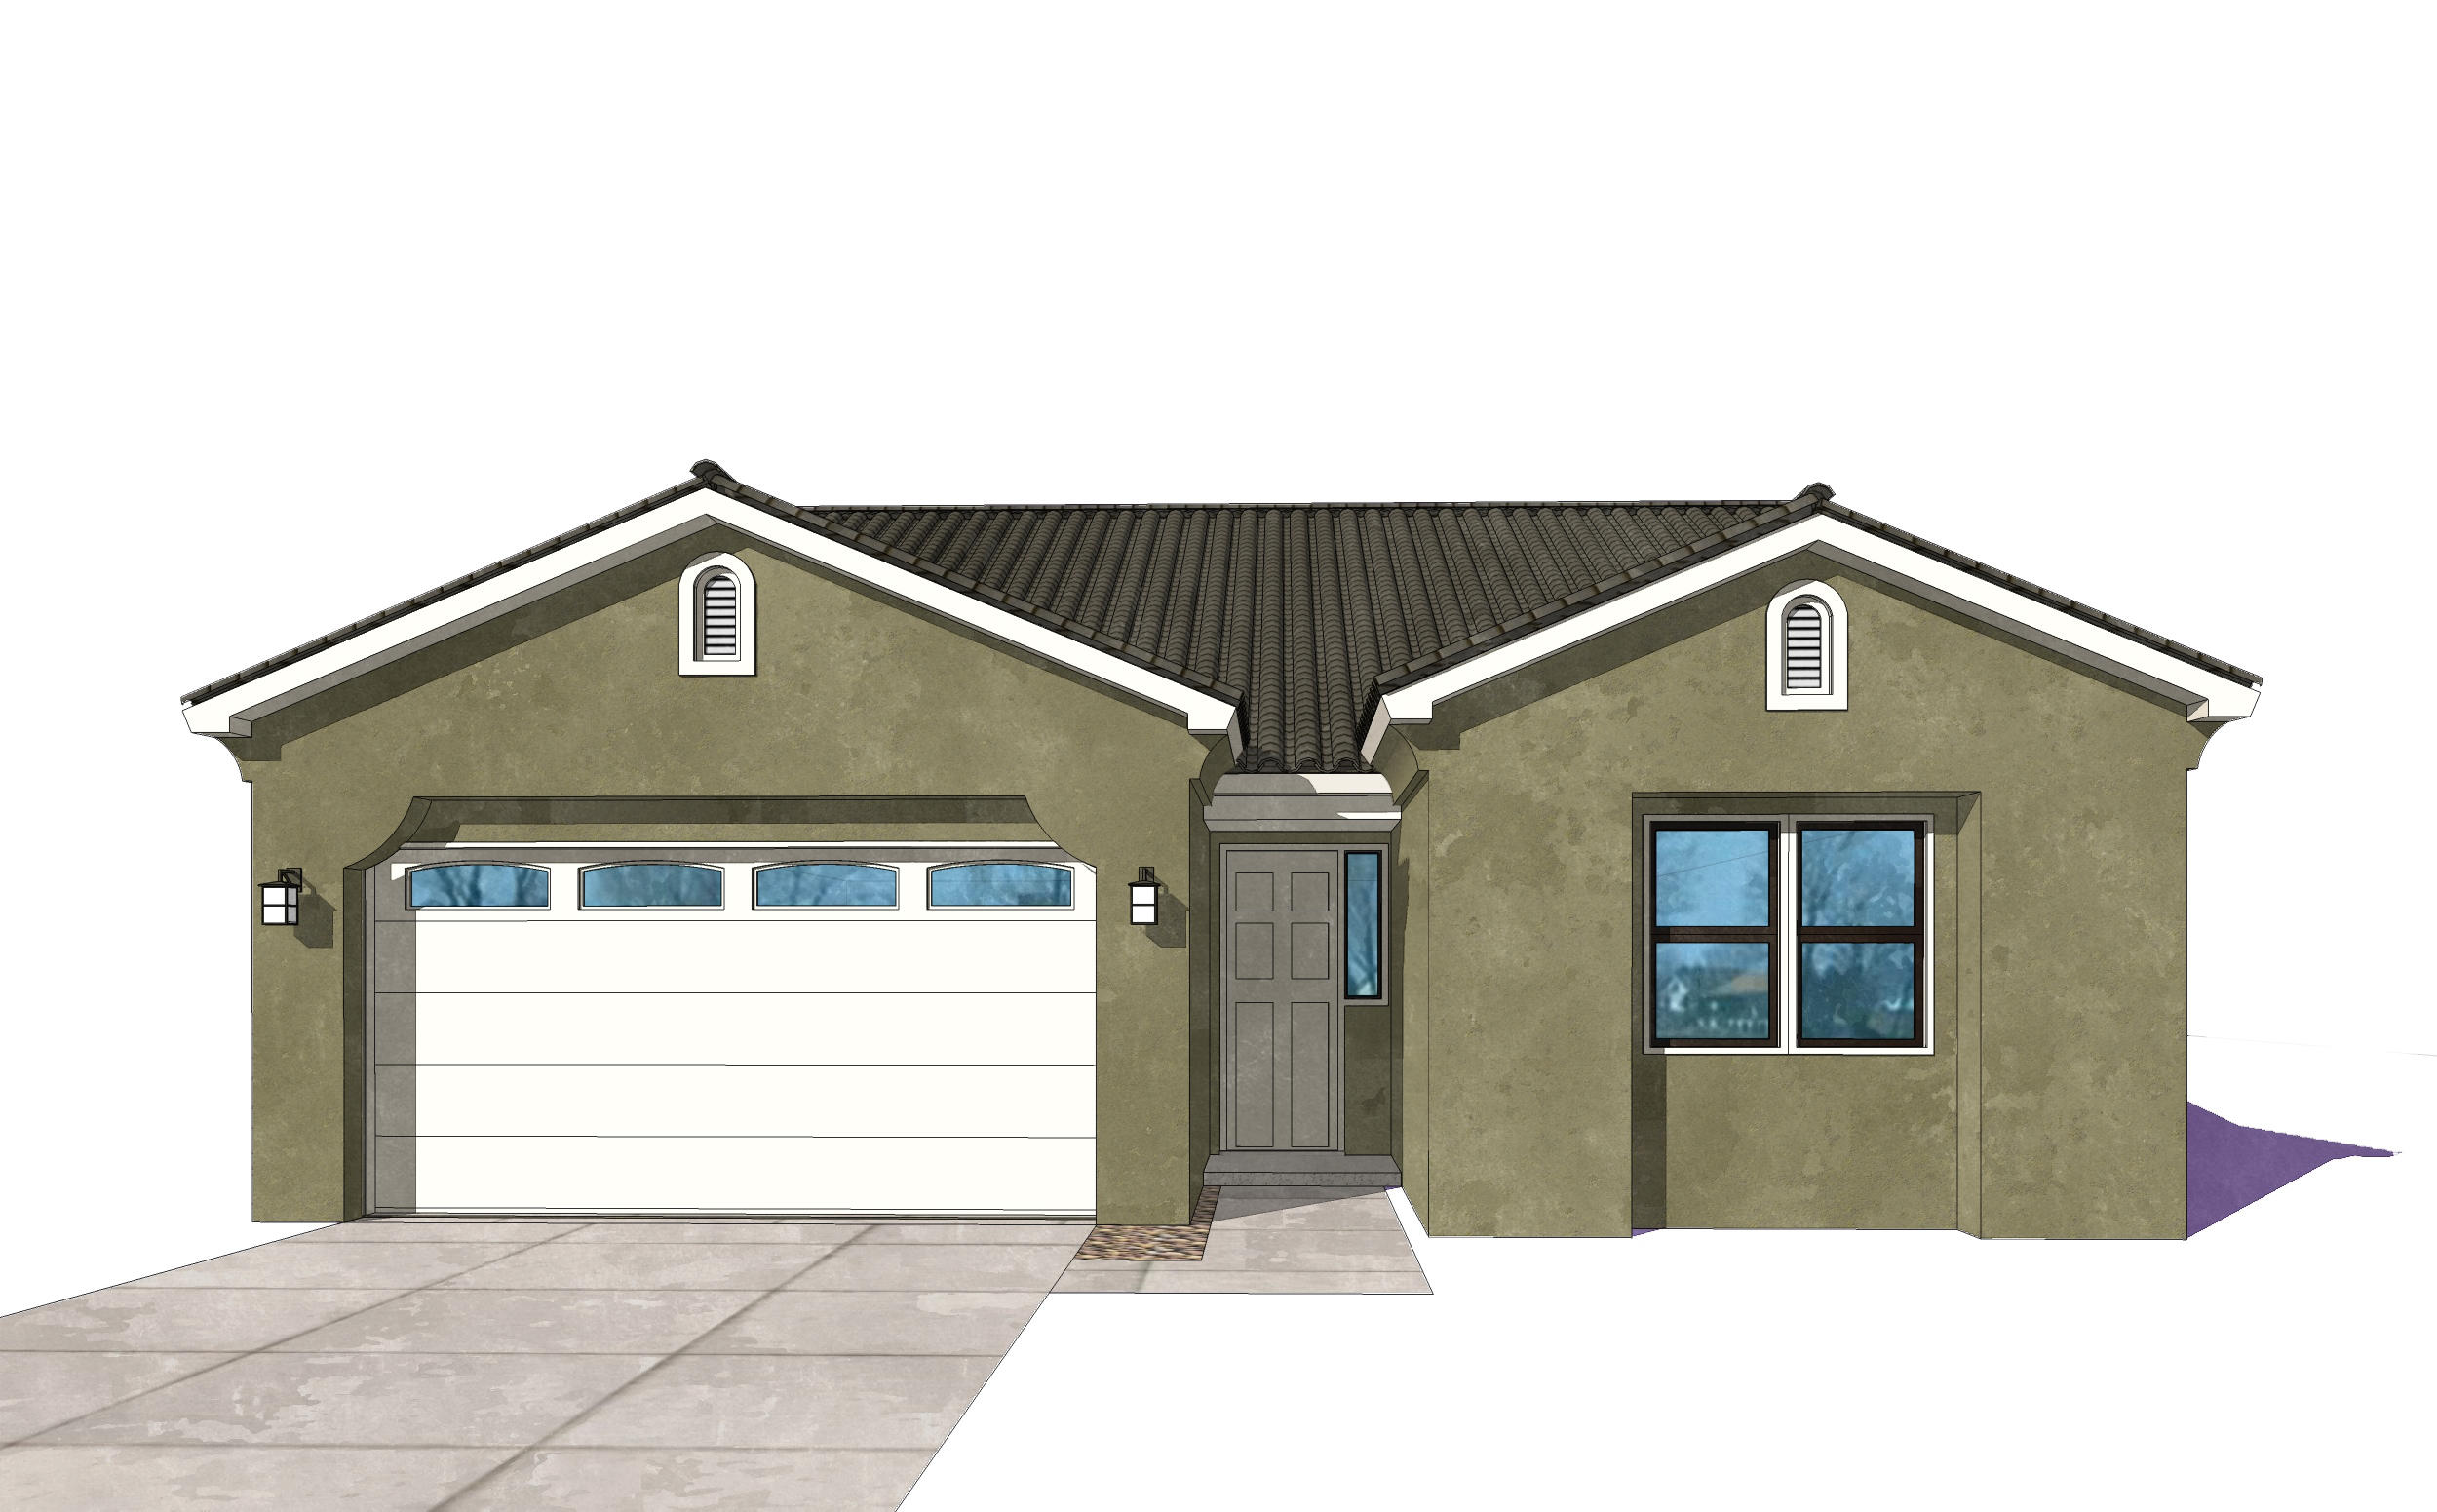 UNDER CONSTRUCTION.Pictures are model representations. Colors and selections may vary. Beautiful home will be ready for Sep move in. Living area features double sliders opening to covered patio with gas FP. Granite in Kitchen & baths, ceramic tile surrounds in shower and bath, Samsung SS appliances including gas stove, microwave, SxS refrigerator, dishwasher and washer and dryer (in white). Blinds throughout, 10' ceilings, coffered in living and master, ceramic tile floors in entry, kitchen, baths, and laundry room as well as dining area. 8' tall oversized garage door with door opener included, recessed LED disc lighting. Energy efficient NM Silver rated with LowE, vinyl dual pane windows. Dual wall and rain head shower heads in master. Don't miss this!